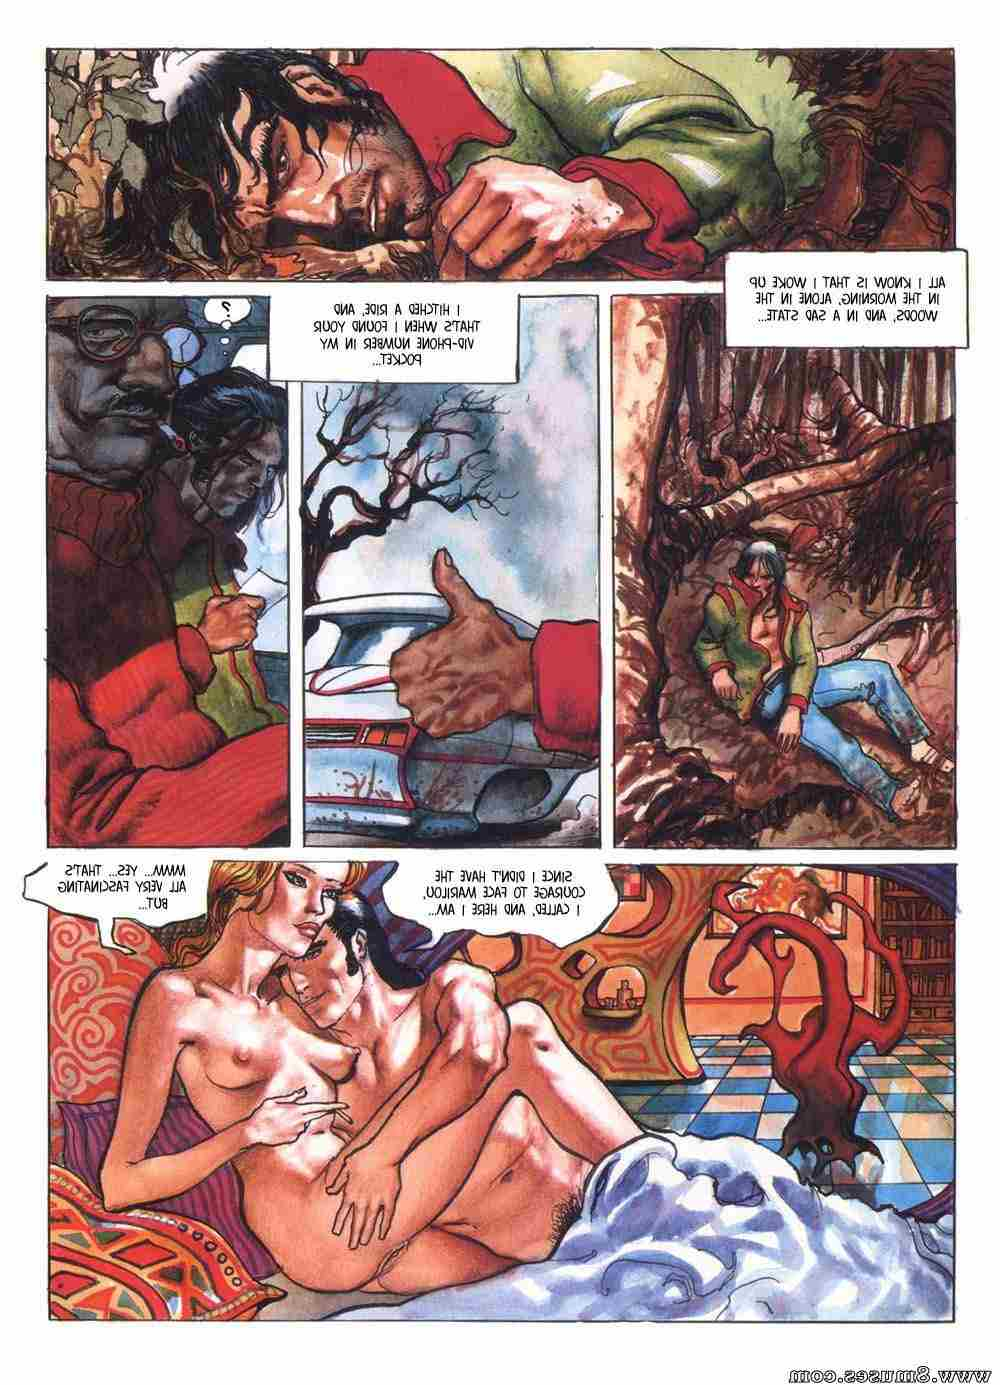 Various-Authors/Starzo/Mike-Mercury Mike_Mercury__8muses_-_Sex_and_Porn_Comics_16.jpg